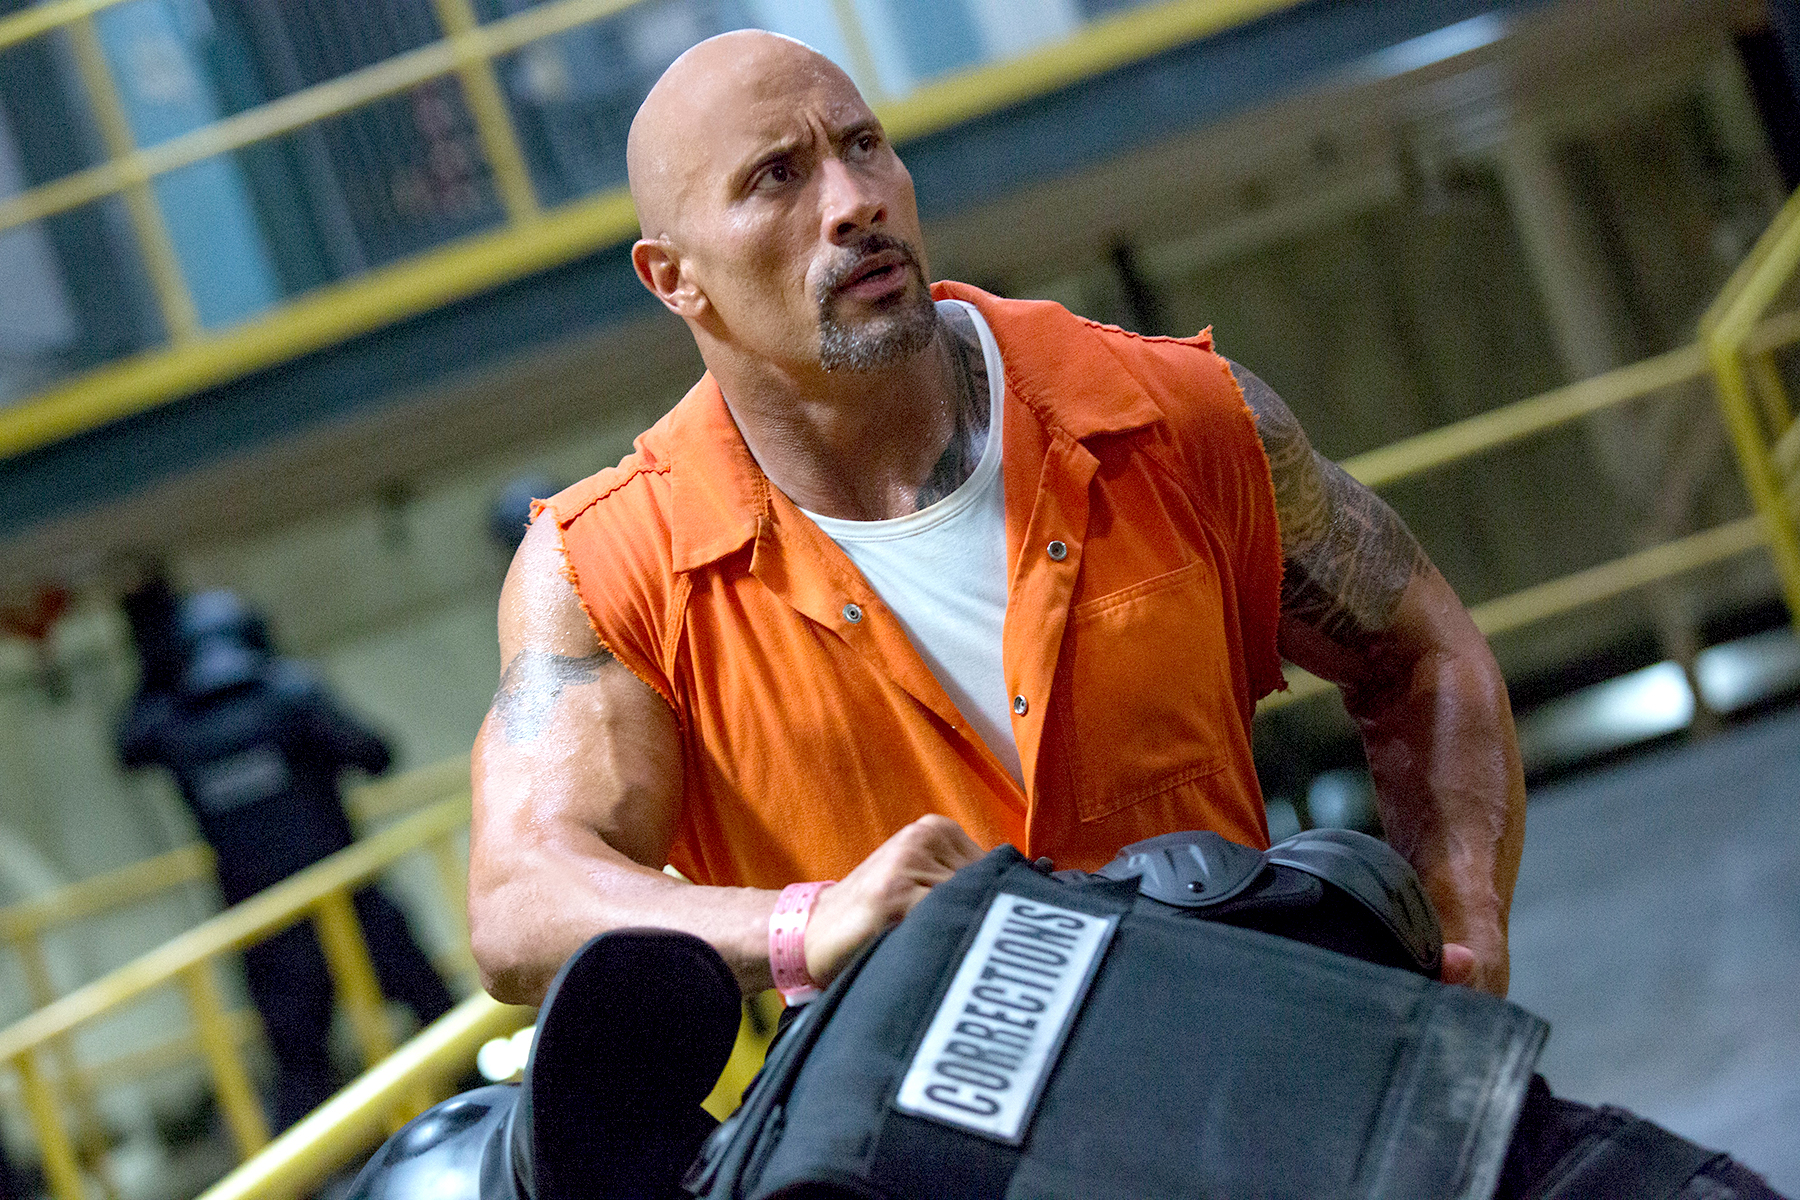 Dwayne Johnson in Fate of the Furious